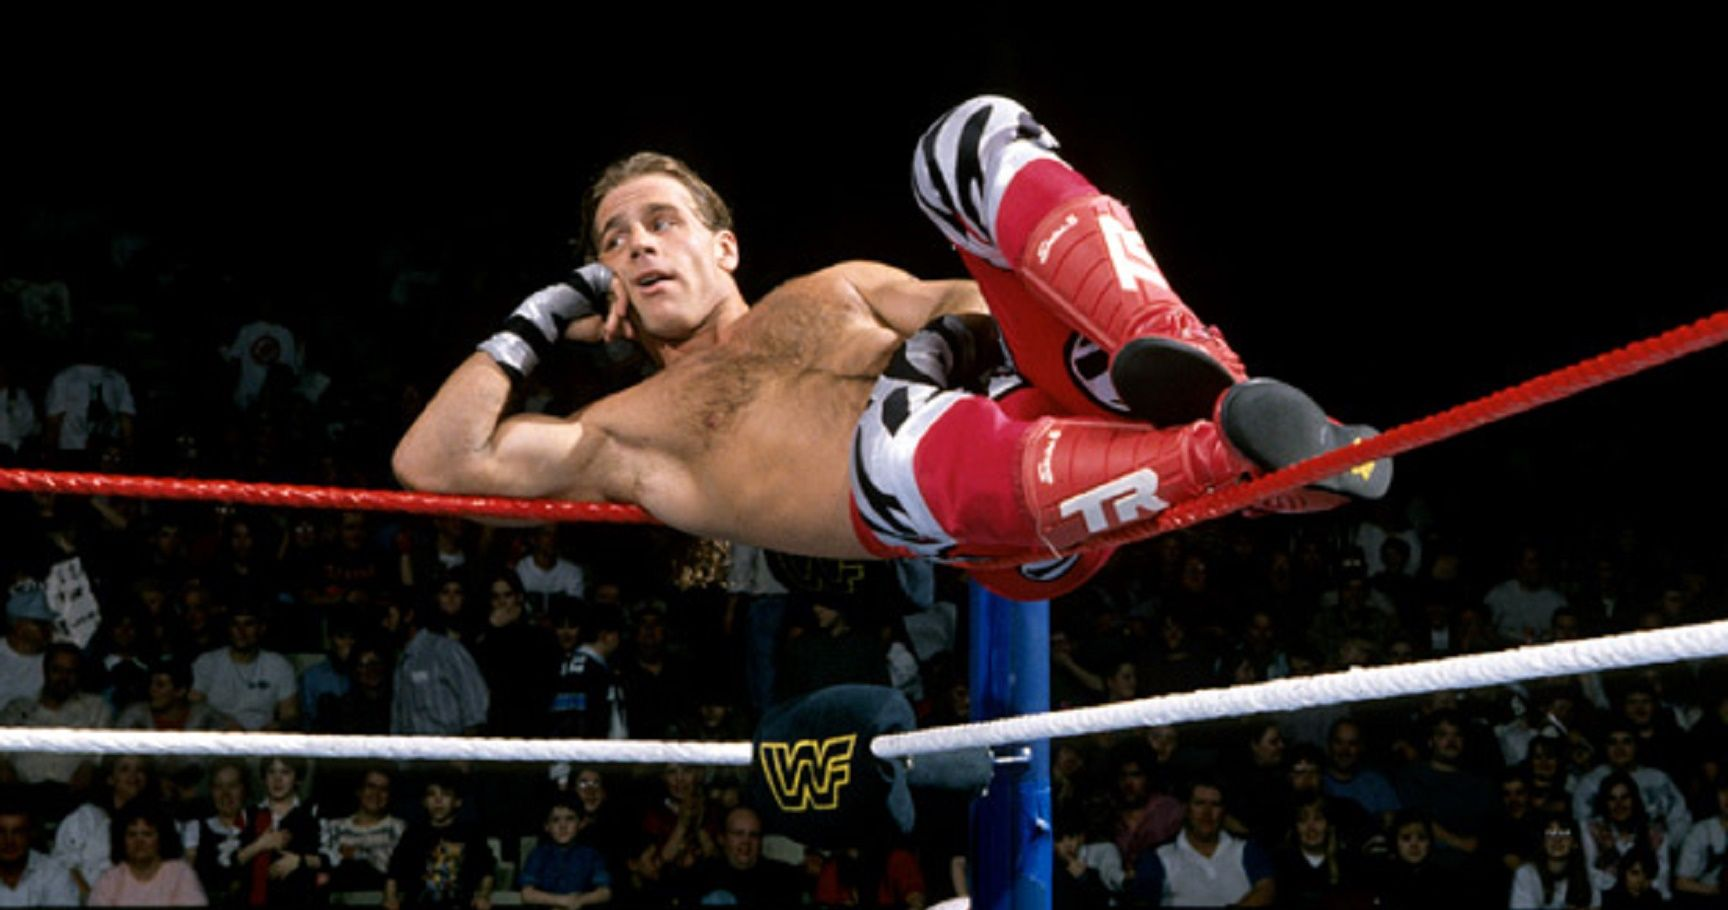 Top 10 backstage horror stories about shawn michaels m4hsunfo